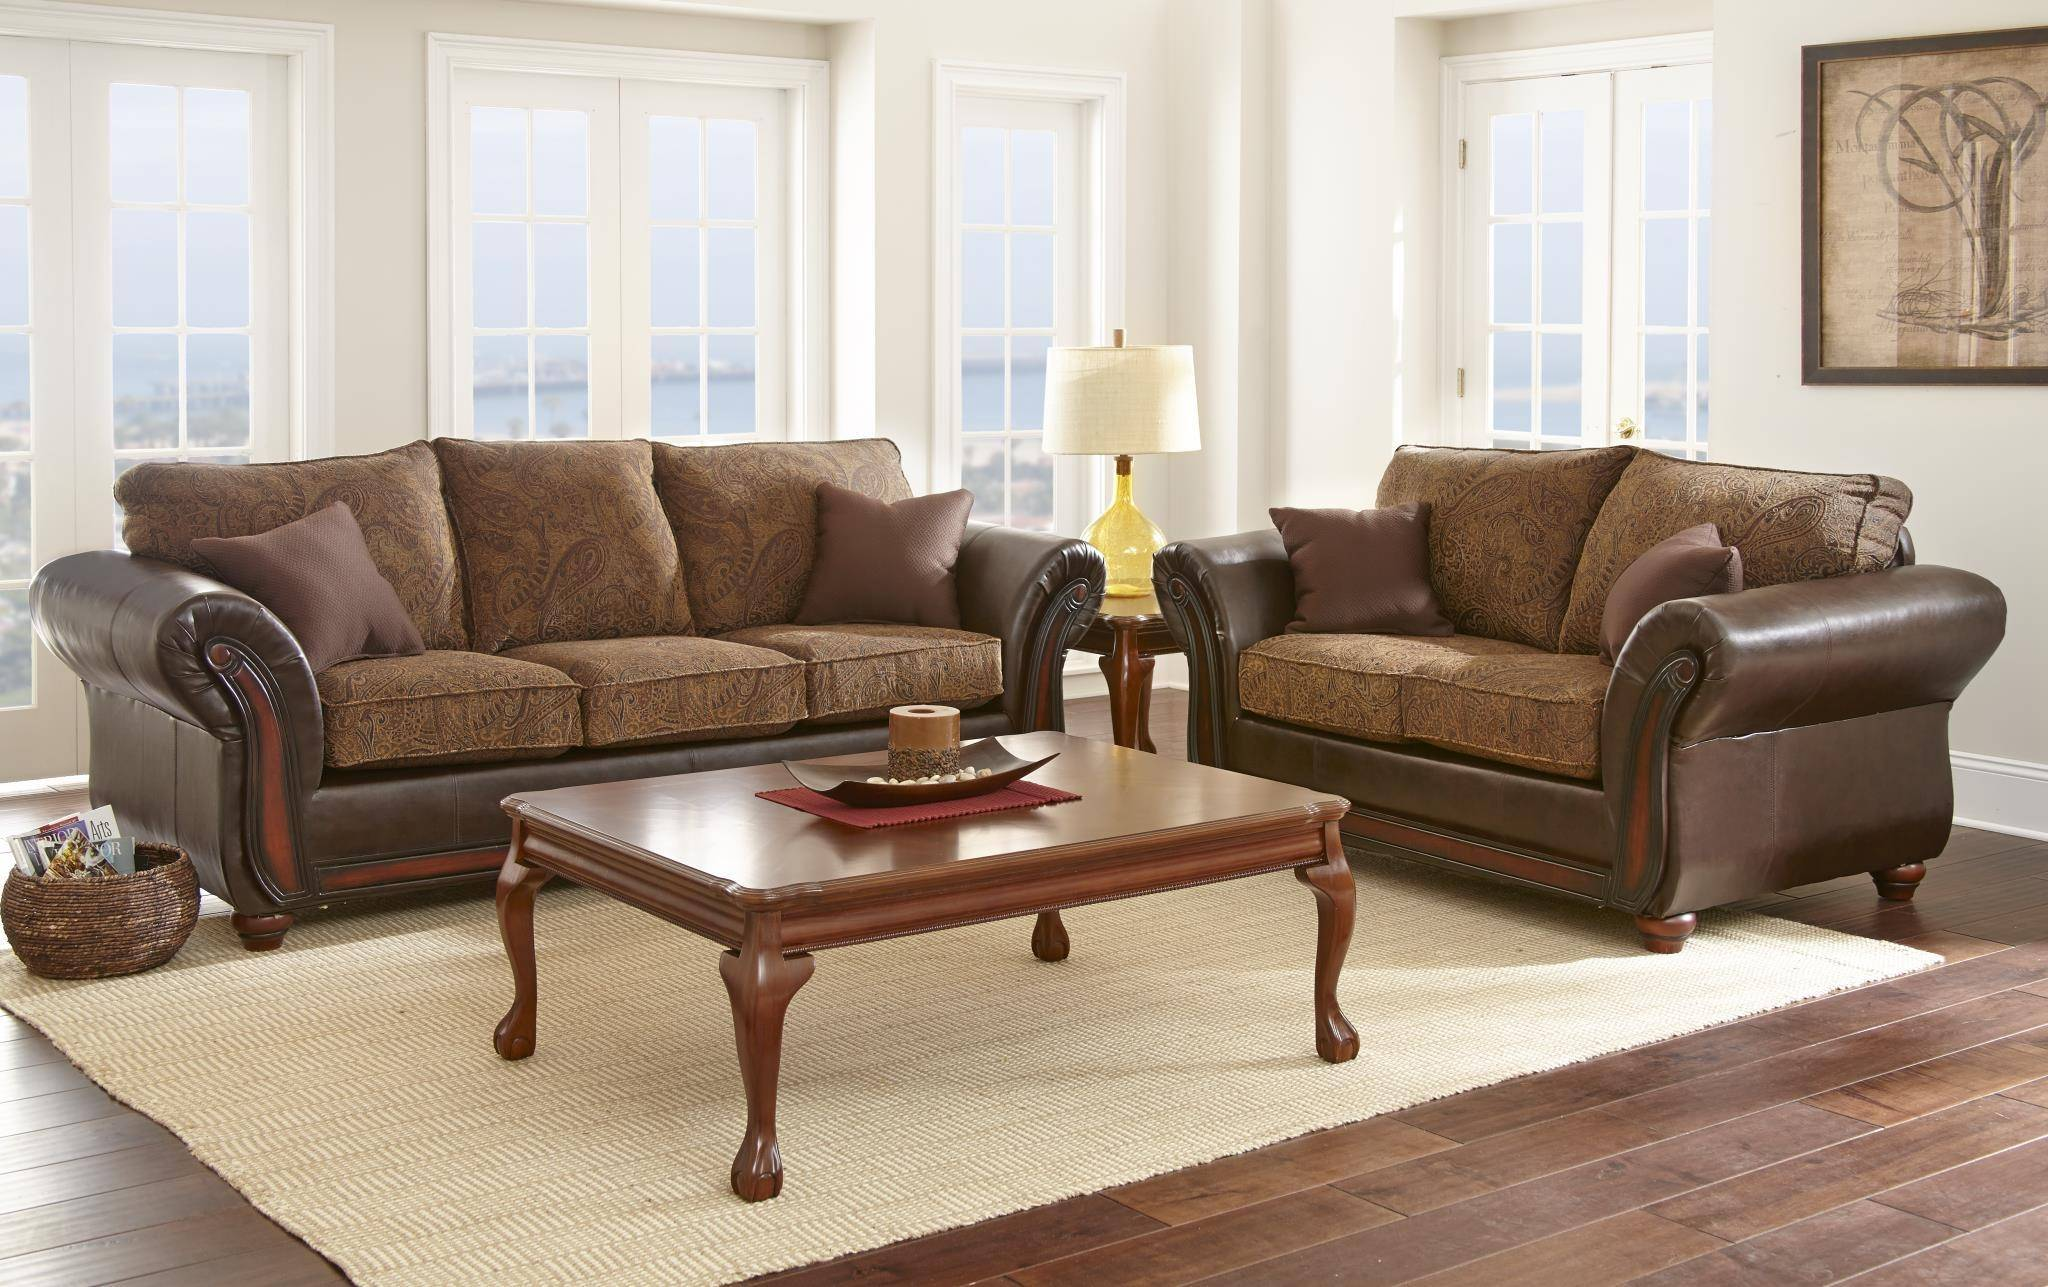 Myco Furniture Brigam Classic Dark Brown Leather Fabric Living Room Sofa Ka110 S